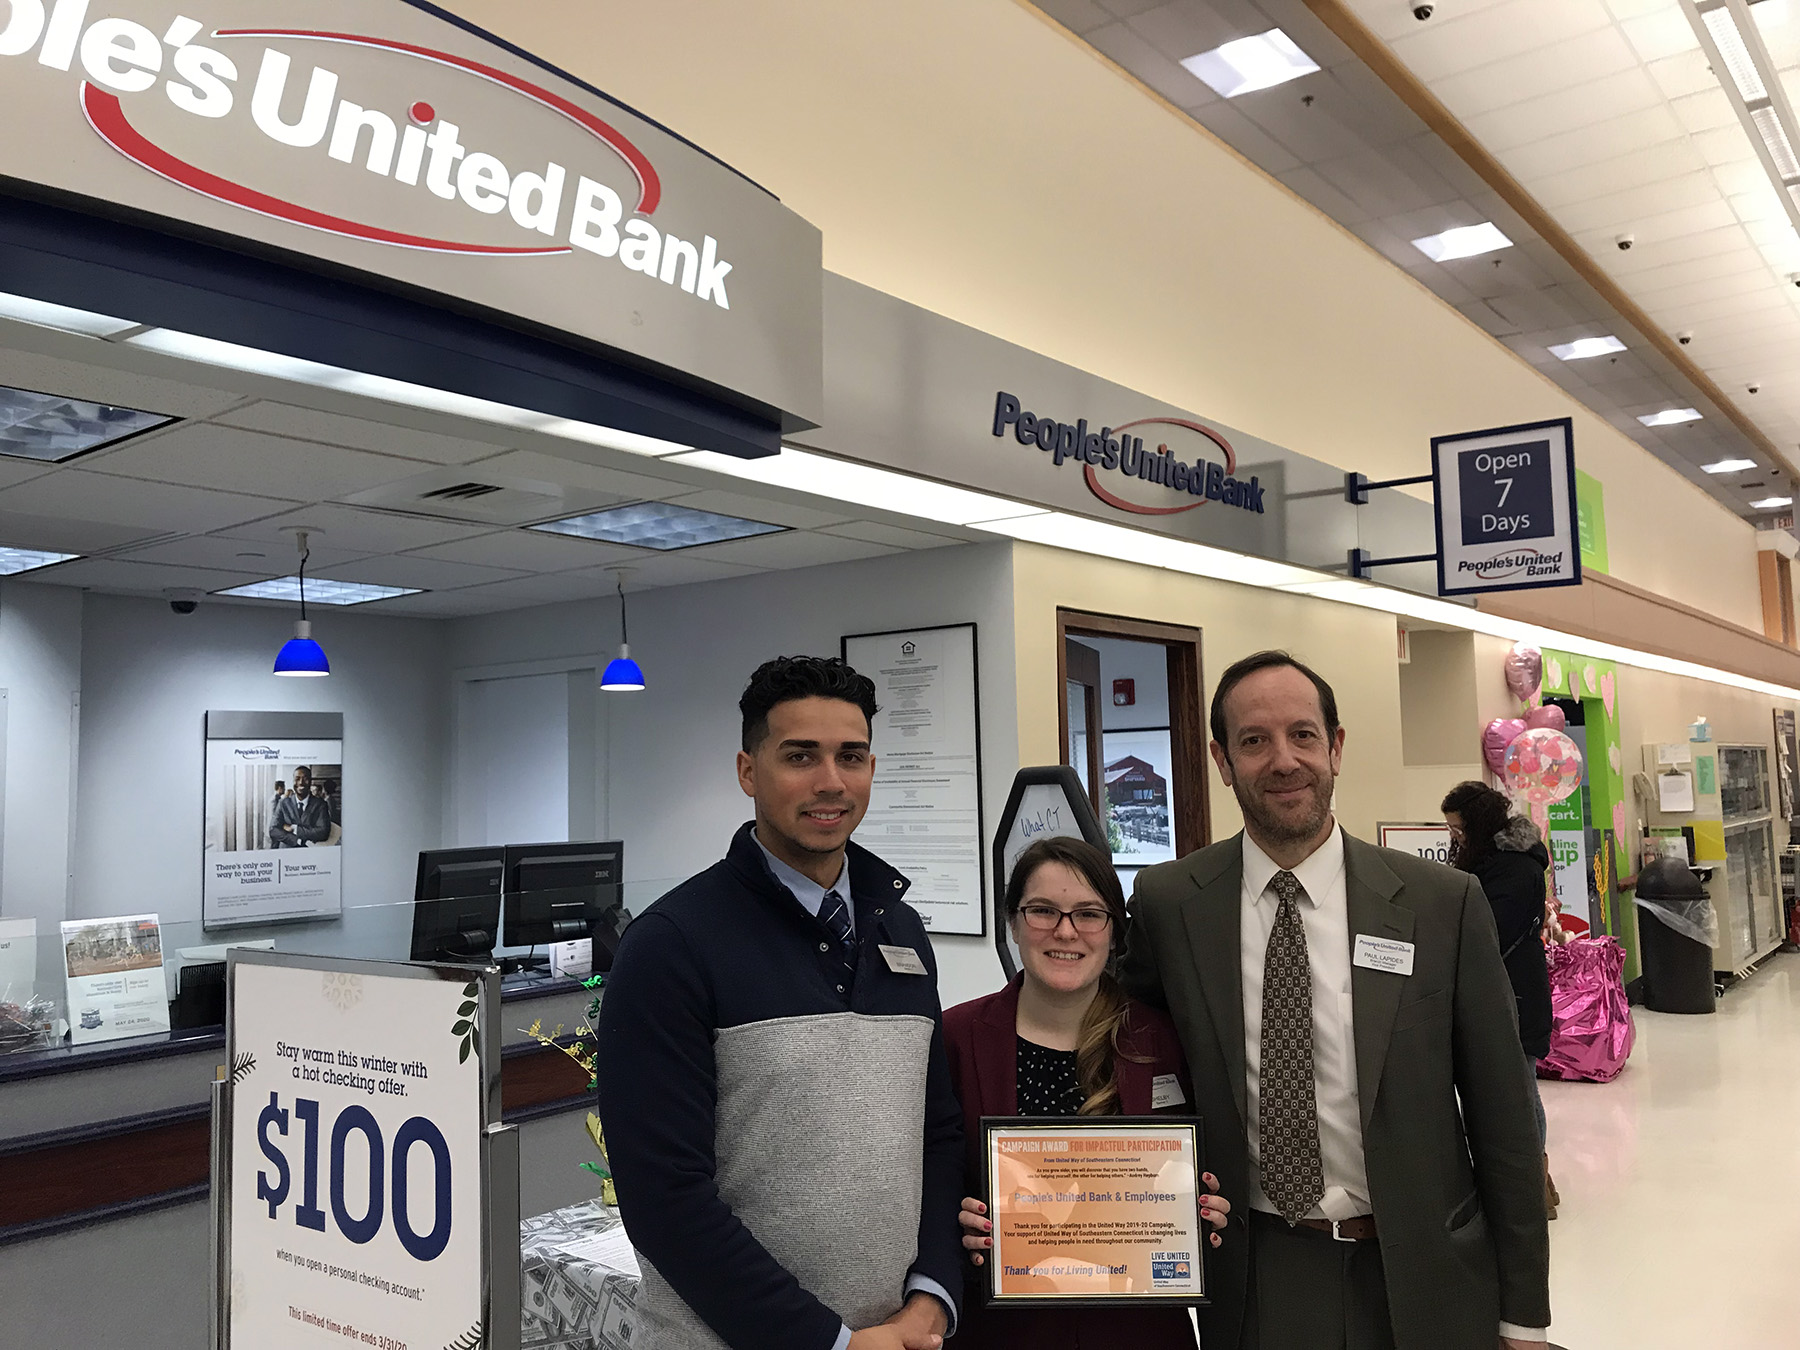 Innovation Award - Stop and Shop, People's Bank, and Employees